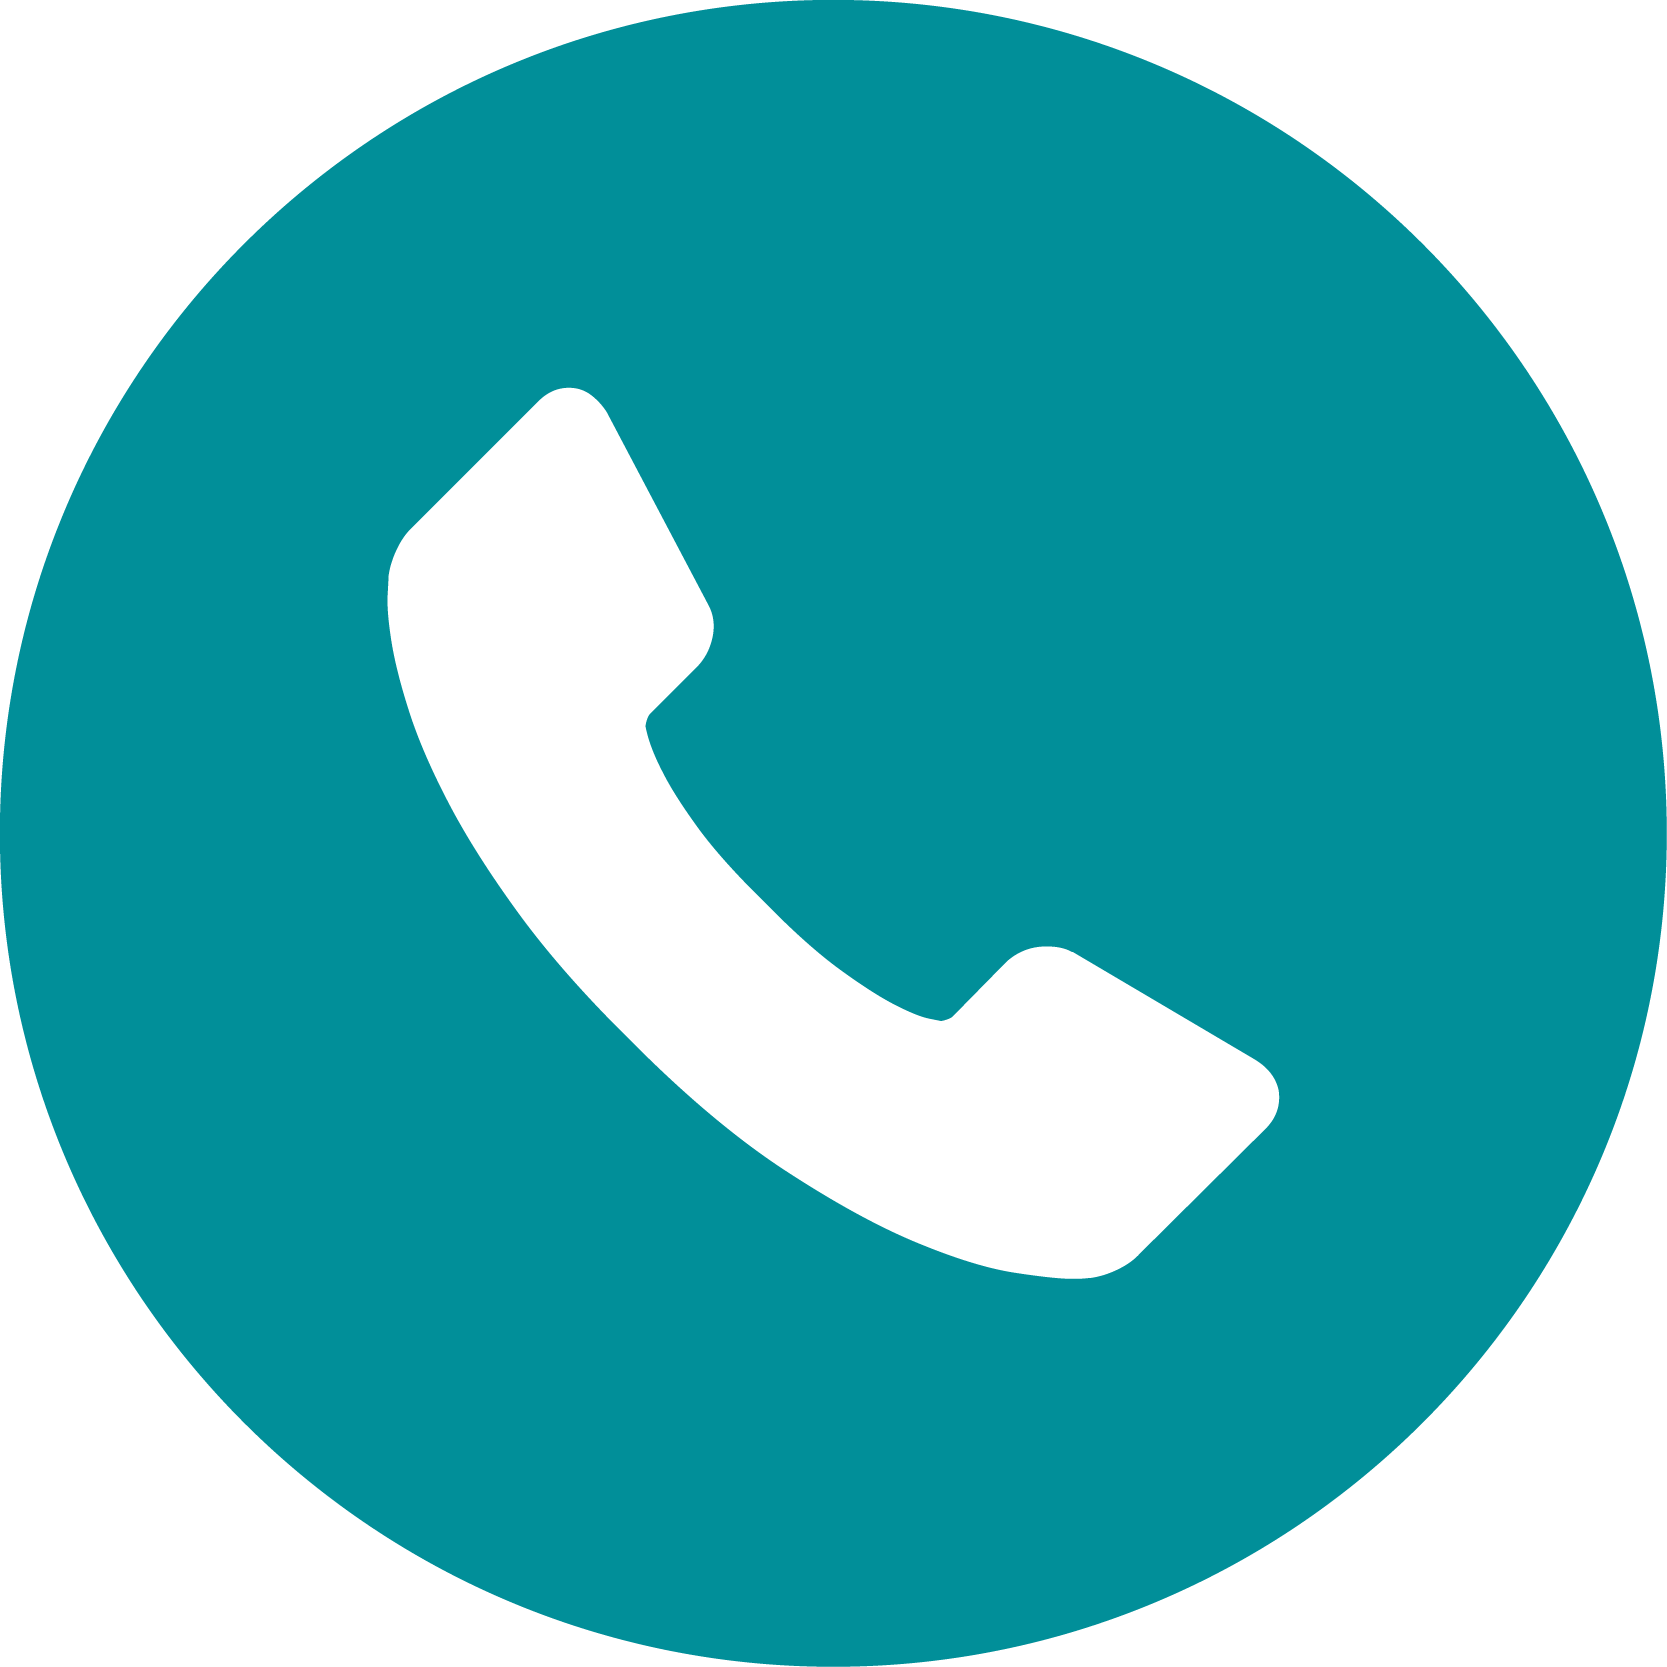 Phone PNG Clipart - Phone PNG